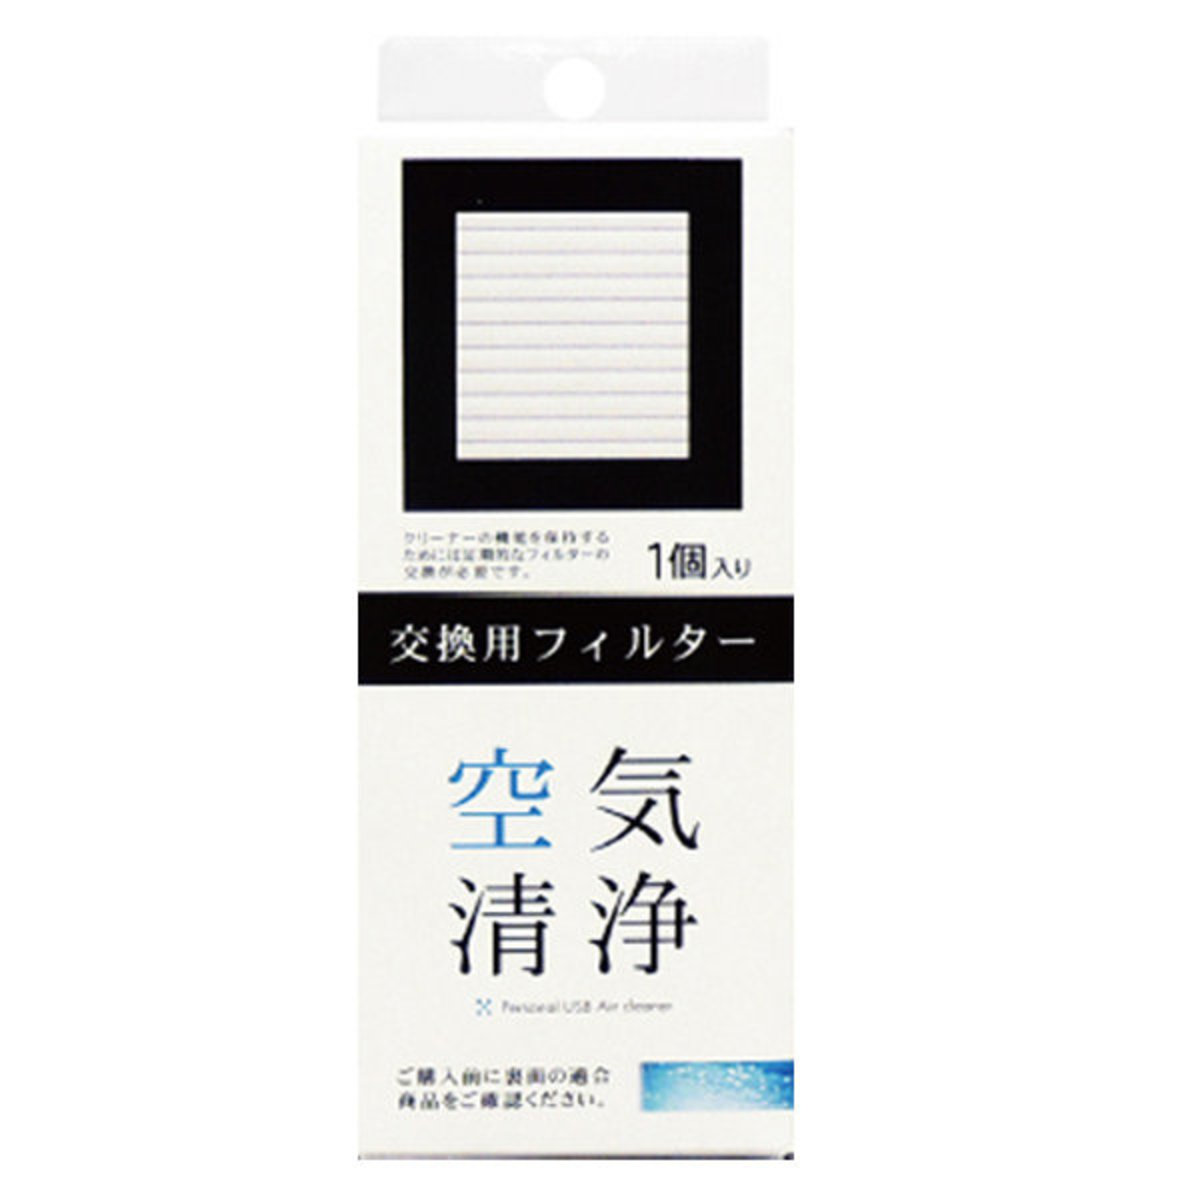 (1pcs) HEPA Filter For Topland Personal USB Air Purifier (For Models: M7070 / M7071) - M7075